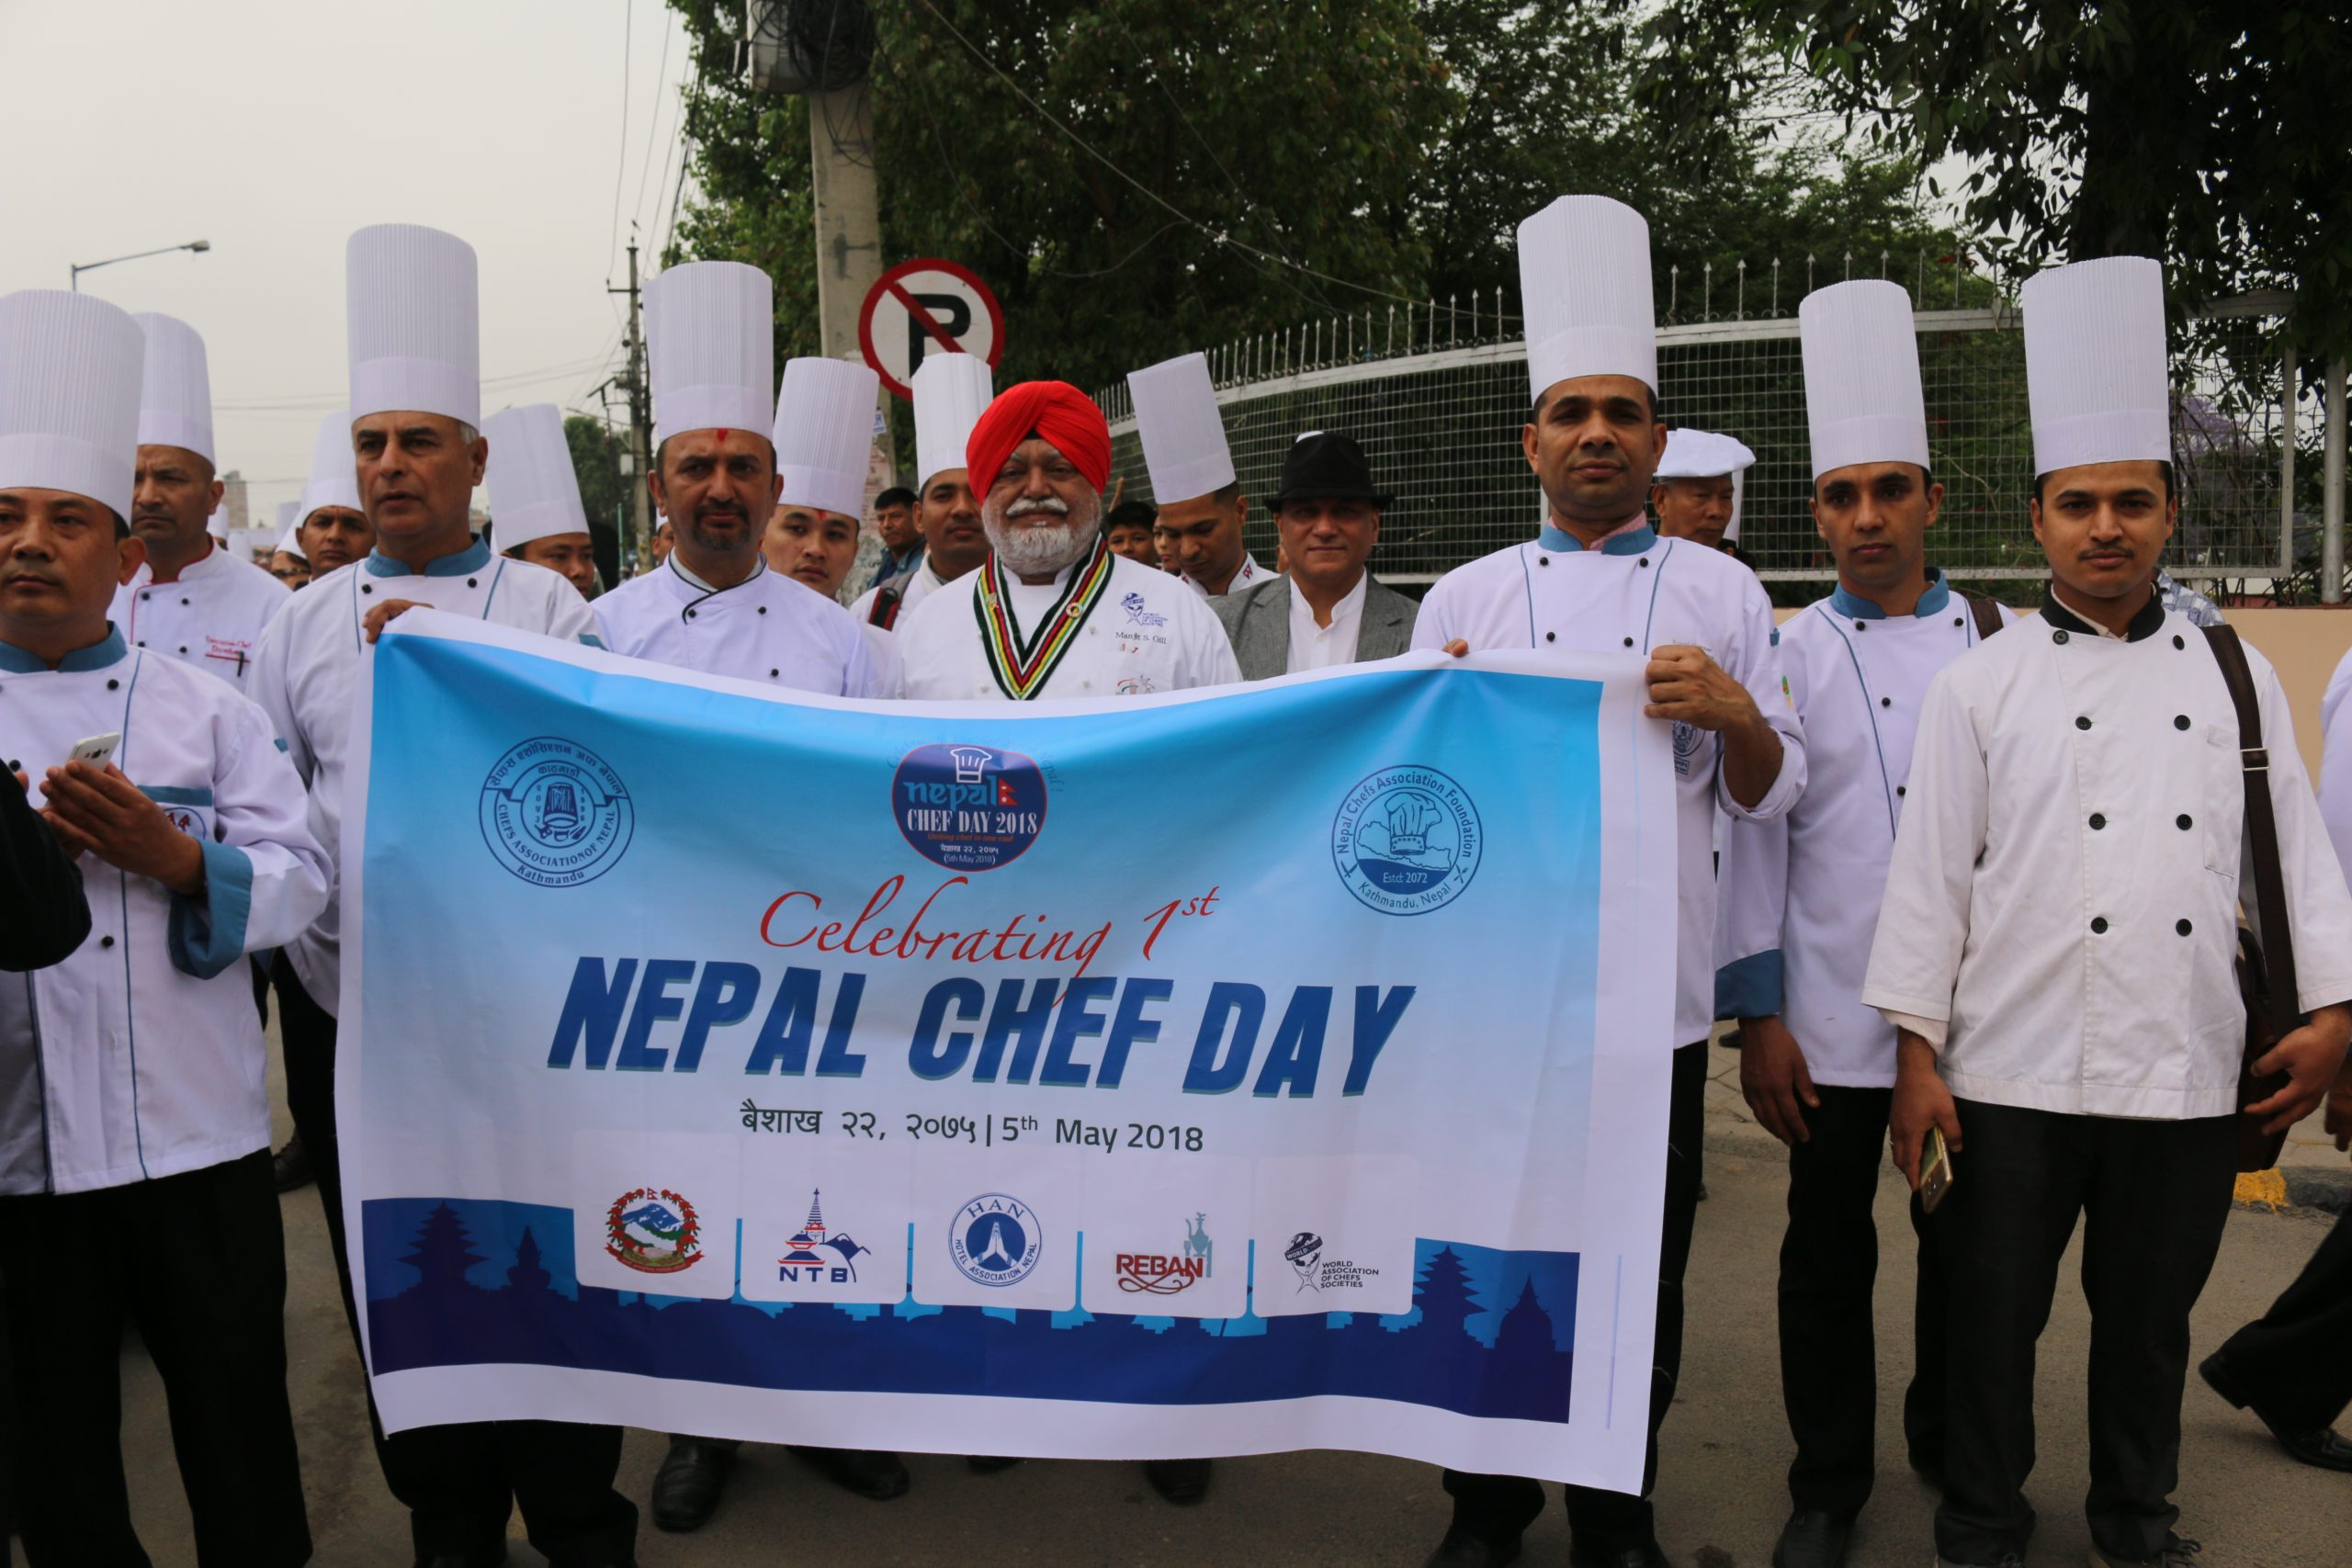 Celebrating 1st Nepal Chef Day